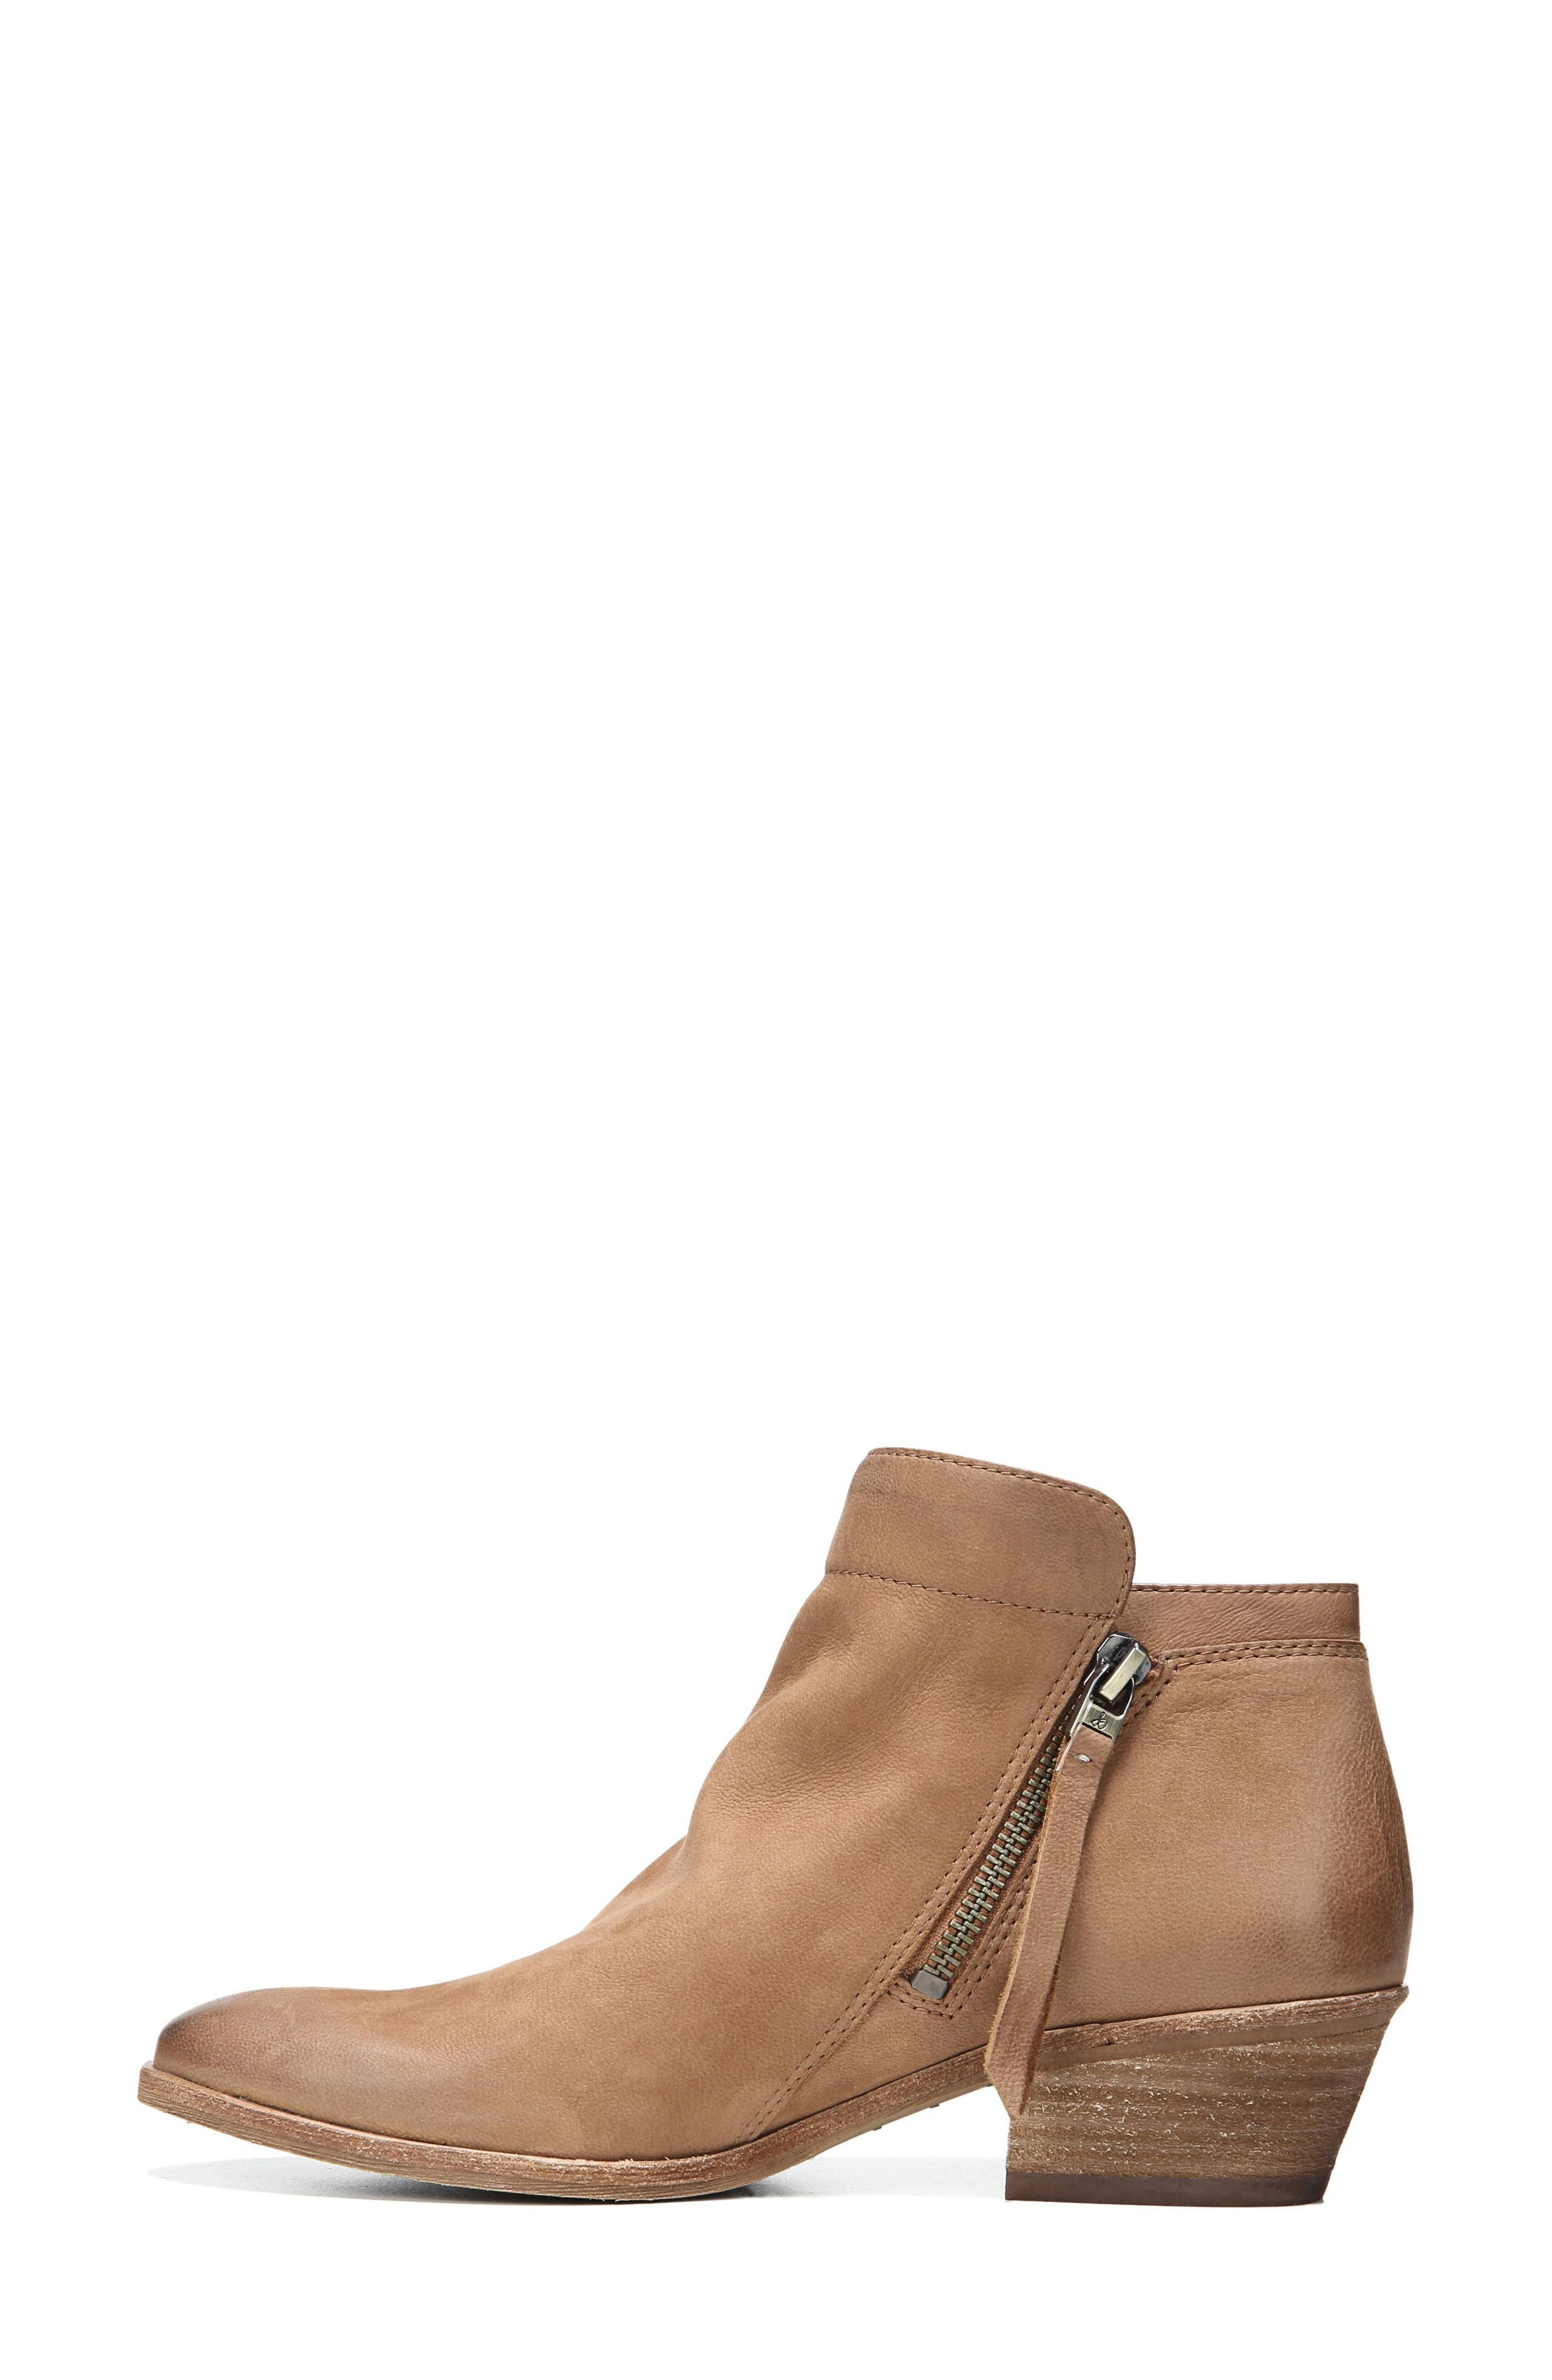 Packer Bootie,                             Alternate thumbnail 3, color,                             DEEP SADDLE LEATHER